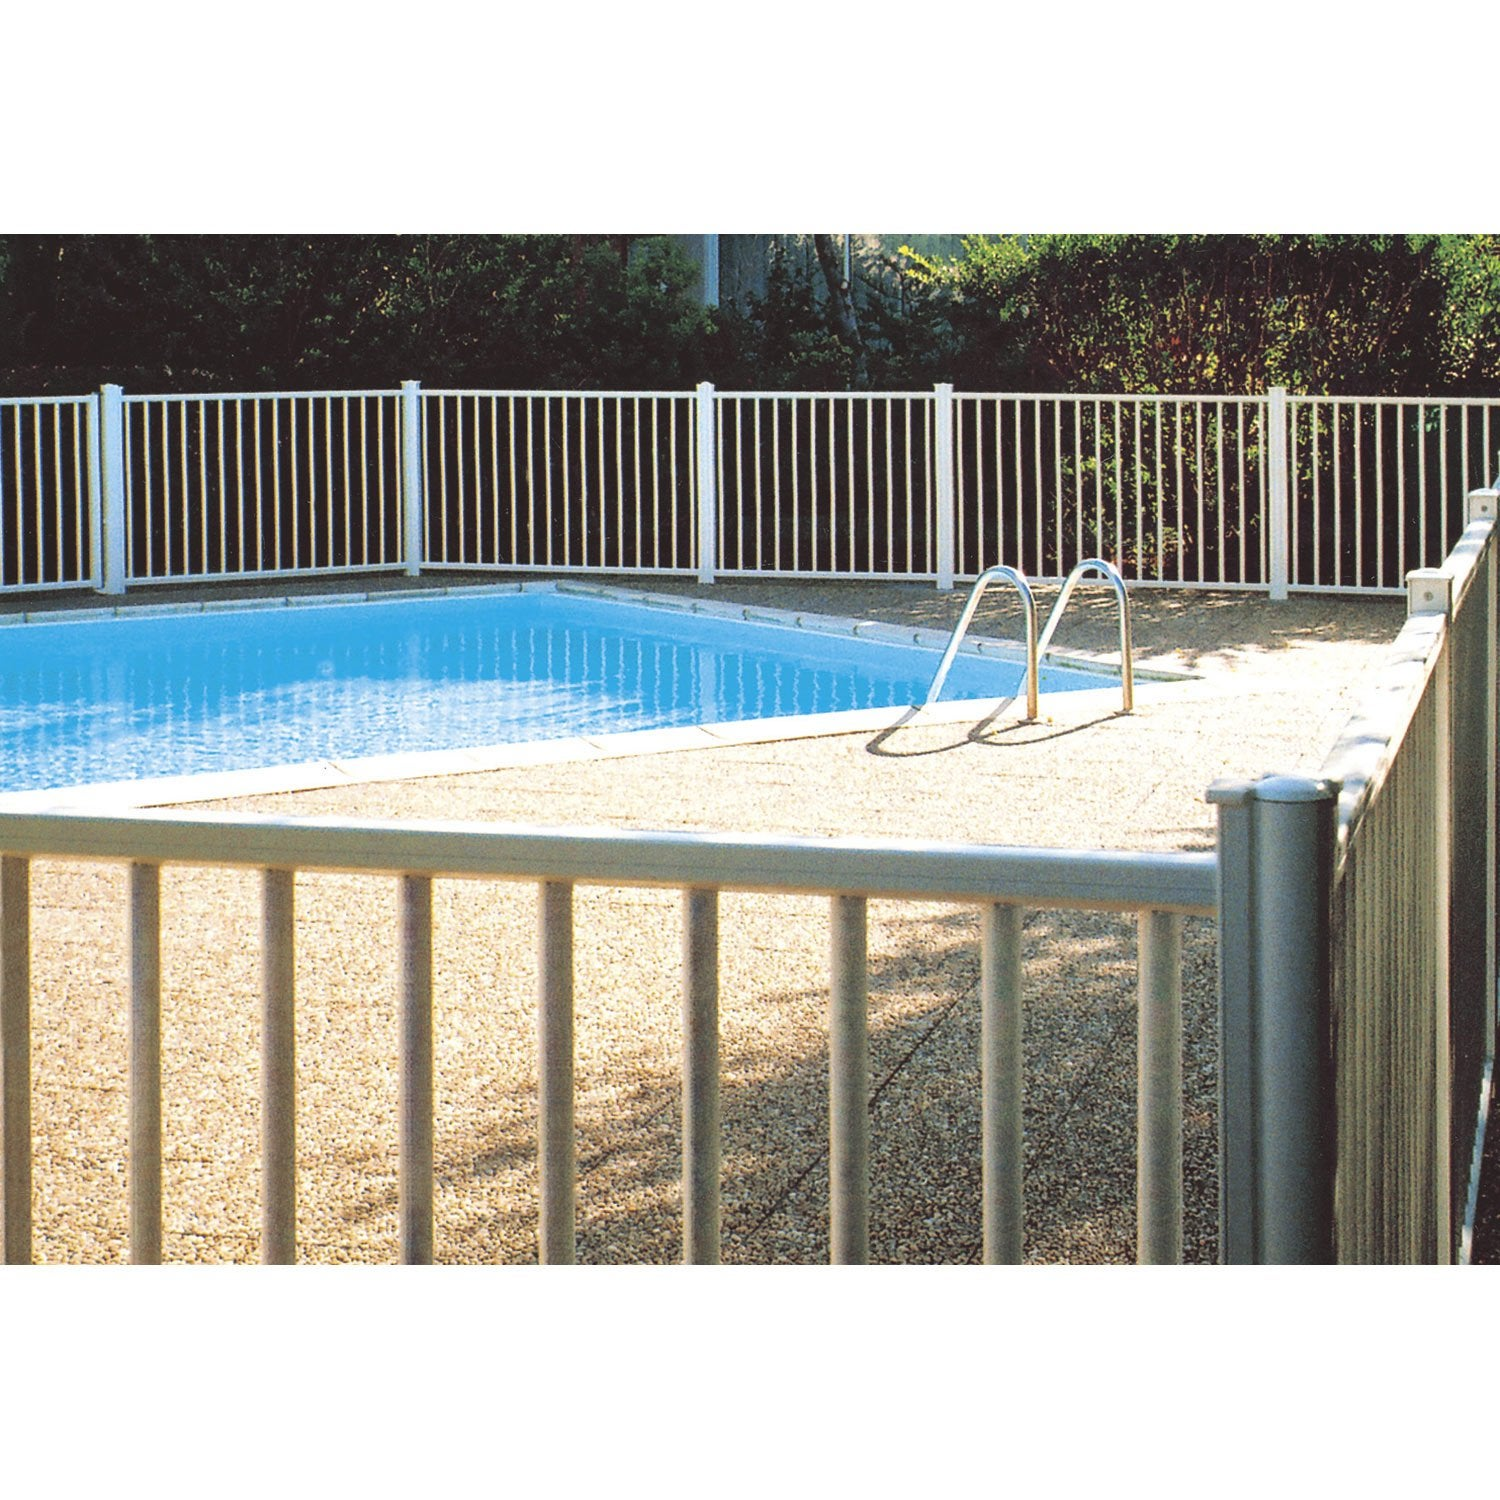 Barri re pour piscine aluminium issambres blanc 9010 h for Barriere amovible pour piscine